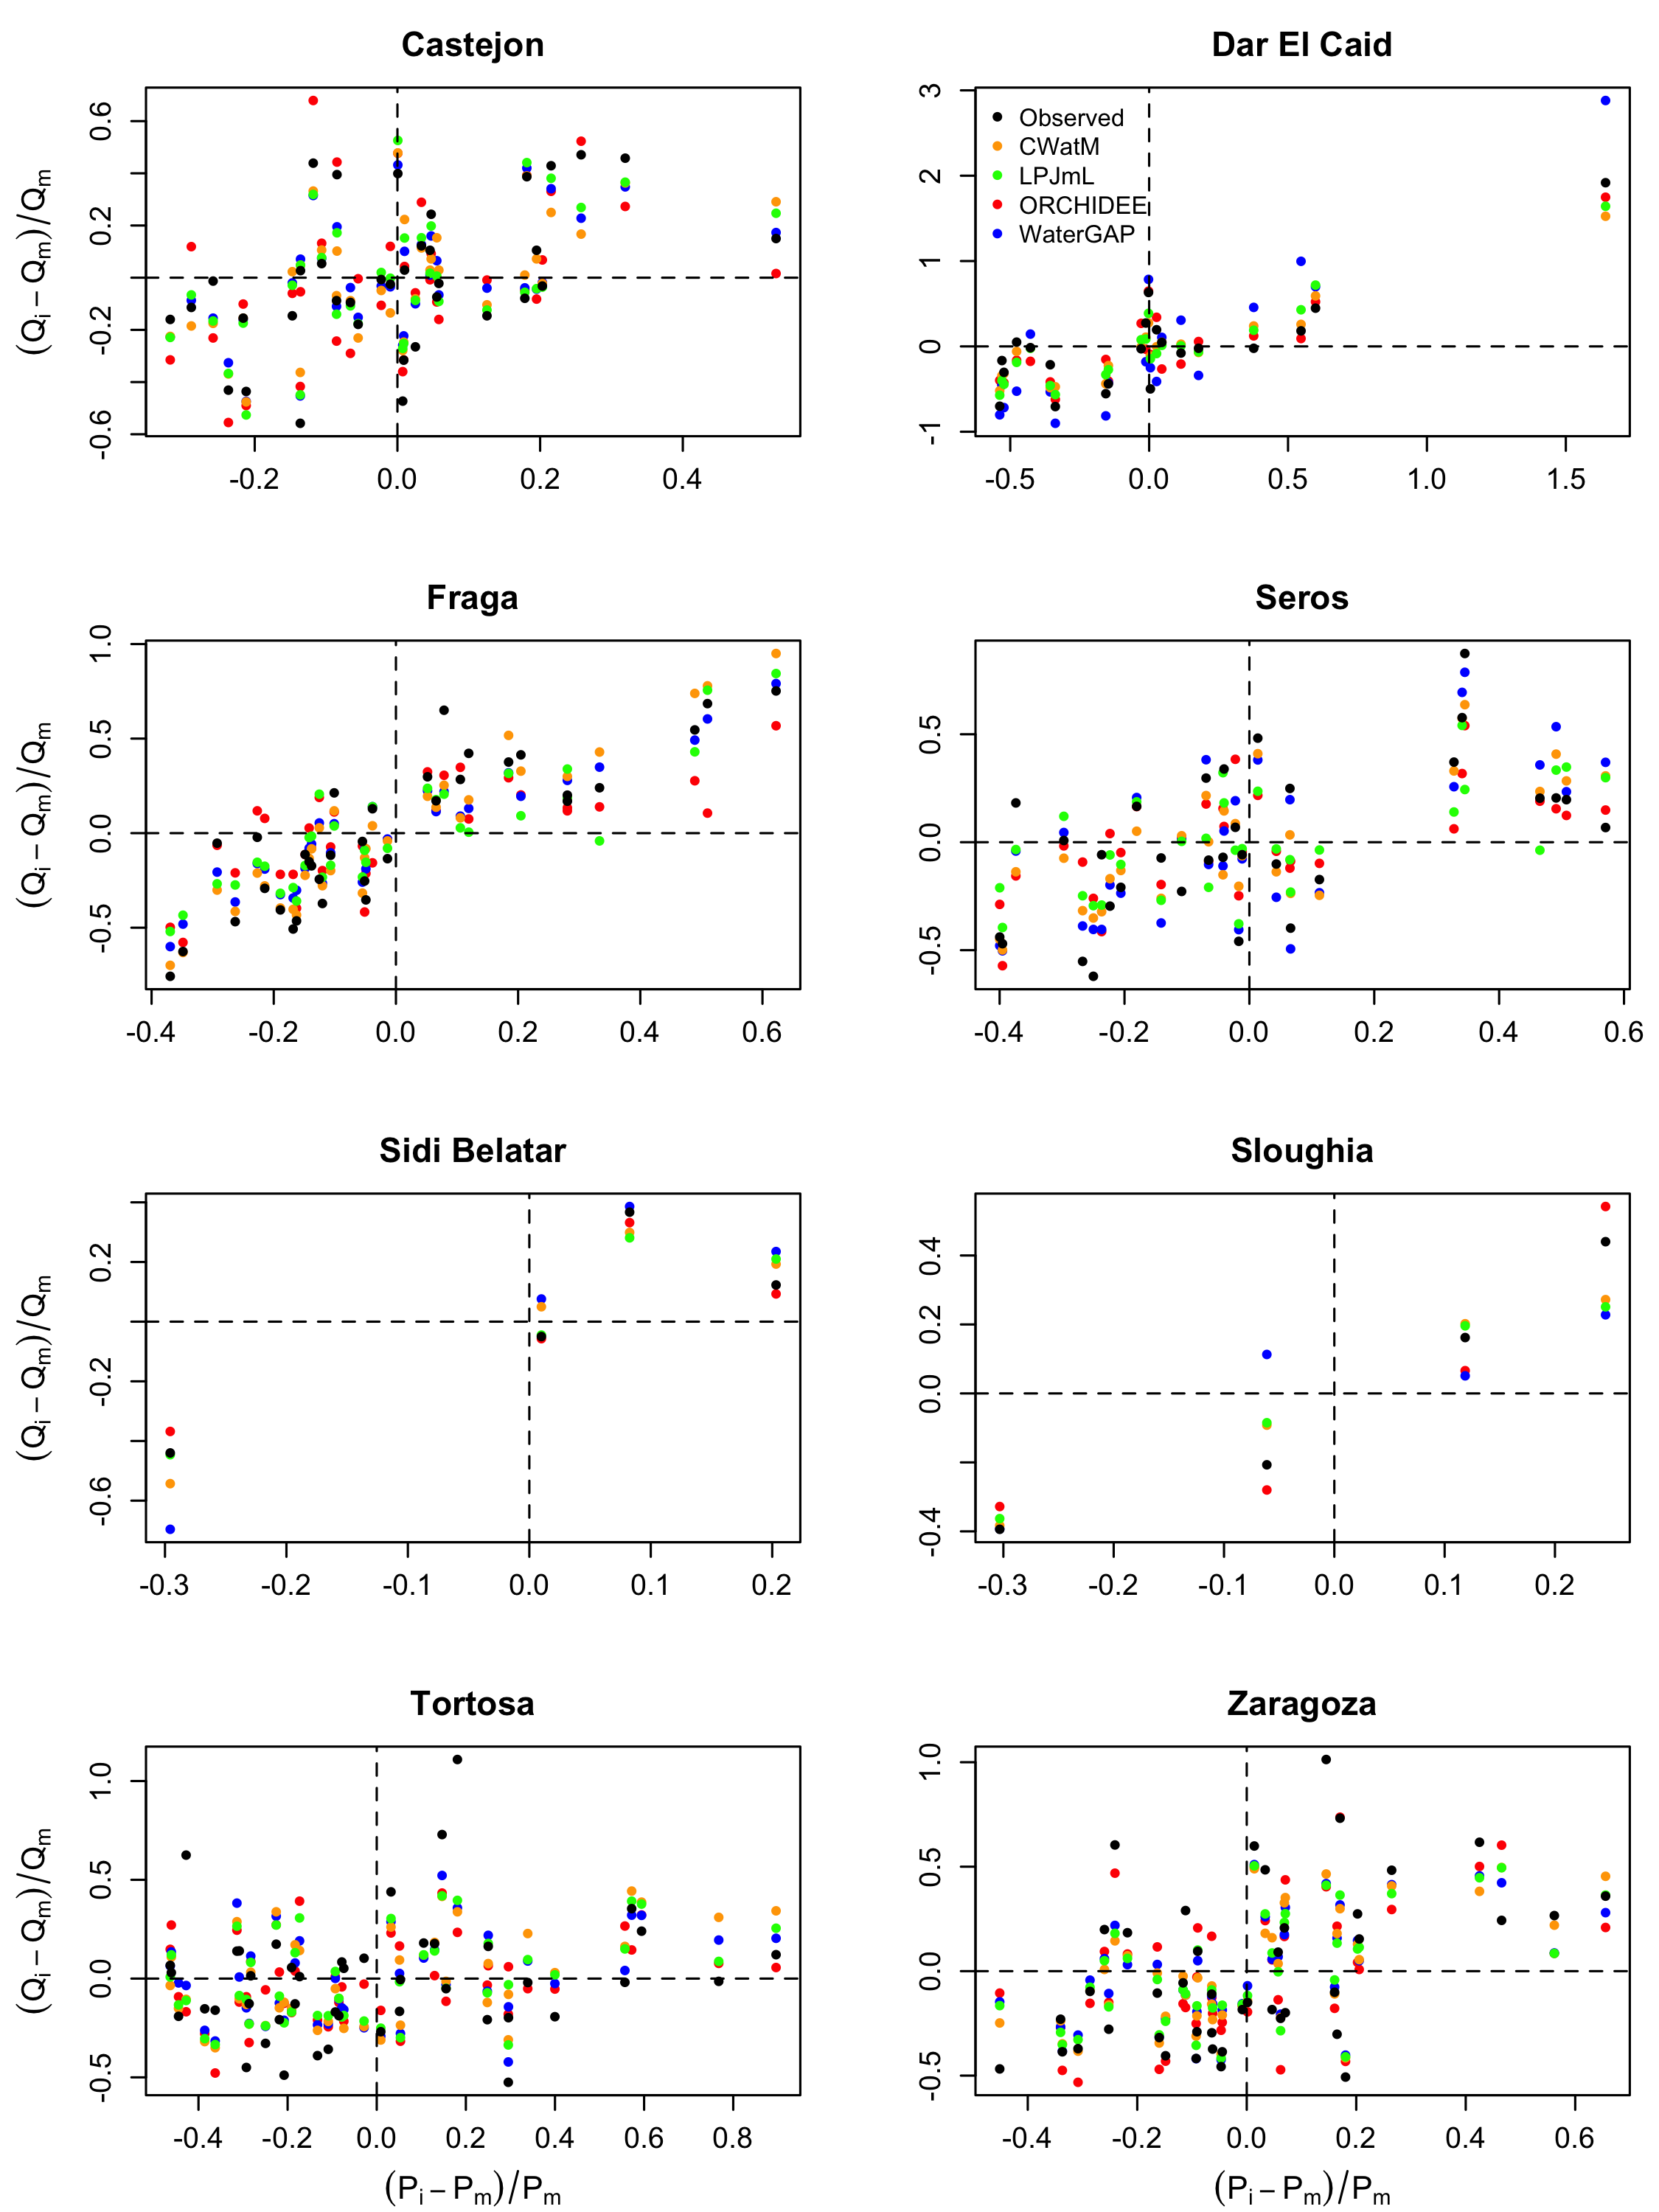 Figure 3: Comparison between observed and modelled sensitivity of annual streamflow to precipitation variability for eight gauging stations. Observations were collected from the online data portal of the Global Runoff Data Centre (GRDC), 56068 Koblenz, Germany. Model estimates were computed by CWatM, LPJmL, ORCHIDEE and WaterGAP2.2d. Qm and Pm are the mean annual streamflow and mean annual precipitation, respectively. Qi and Pi are the annual streamflow and annual precipitation at time i, respectively.